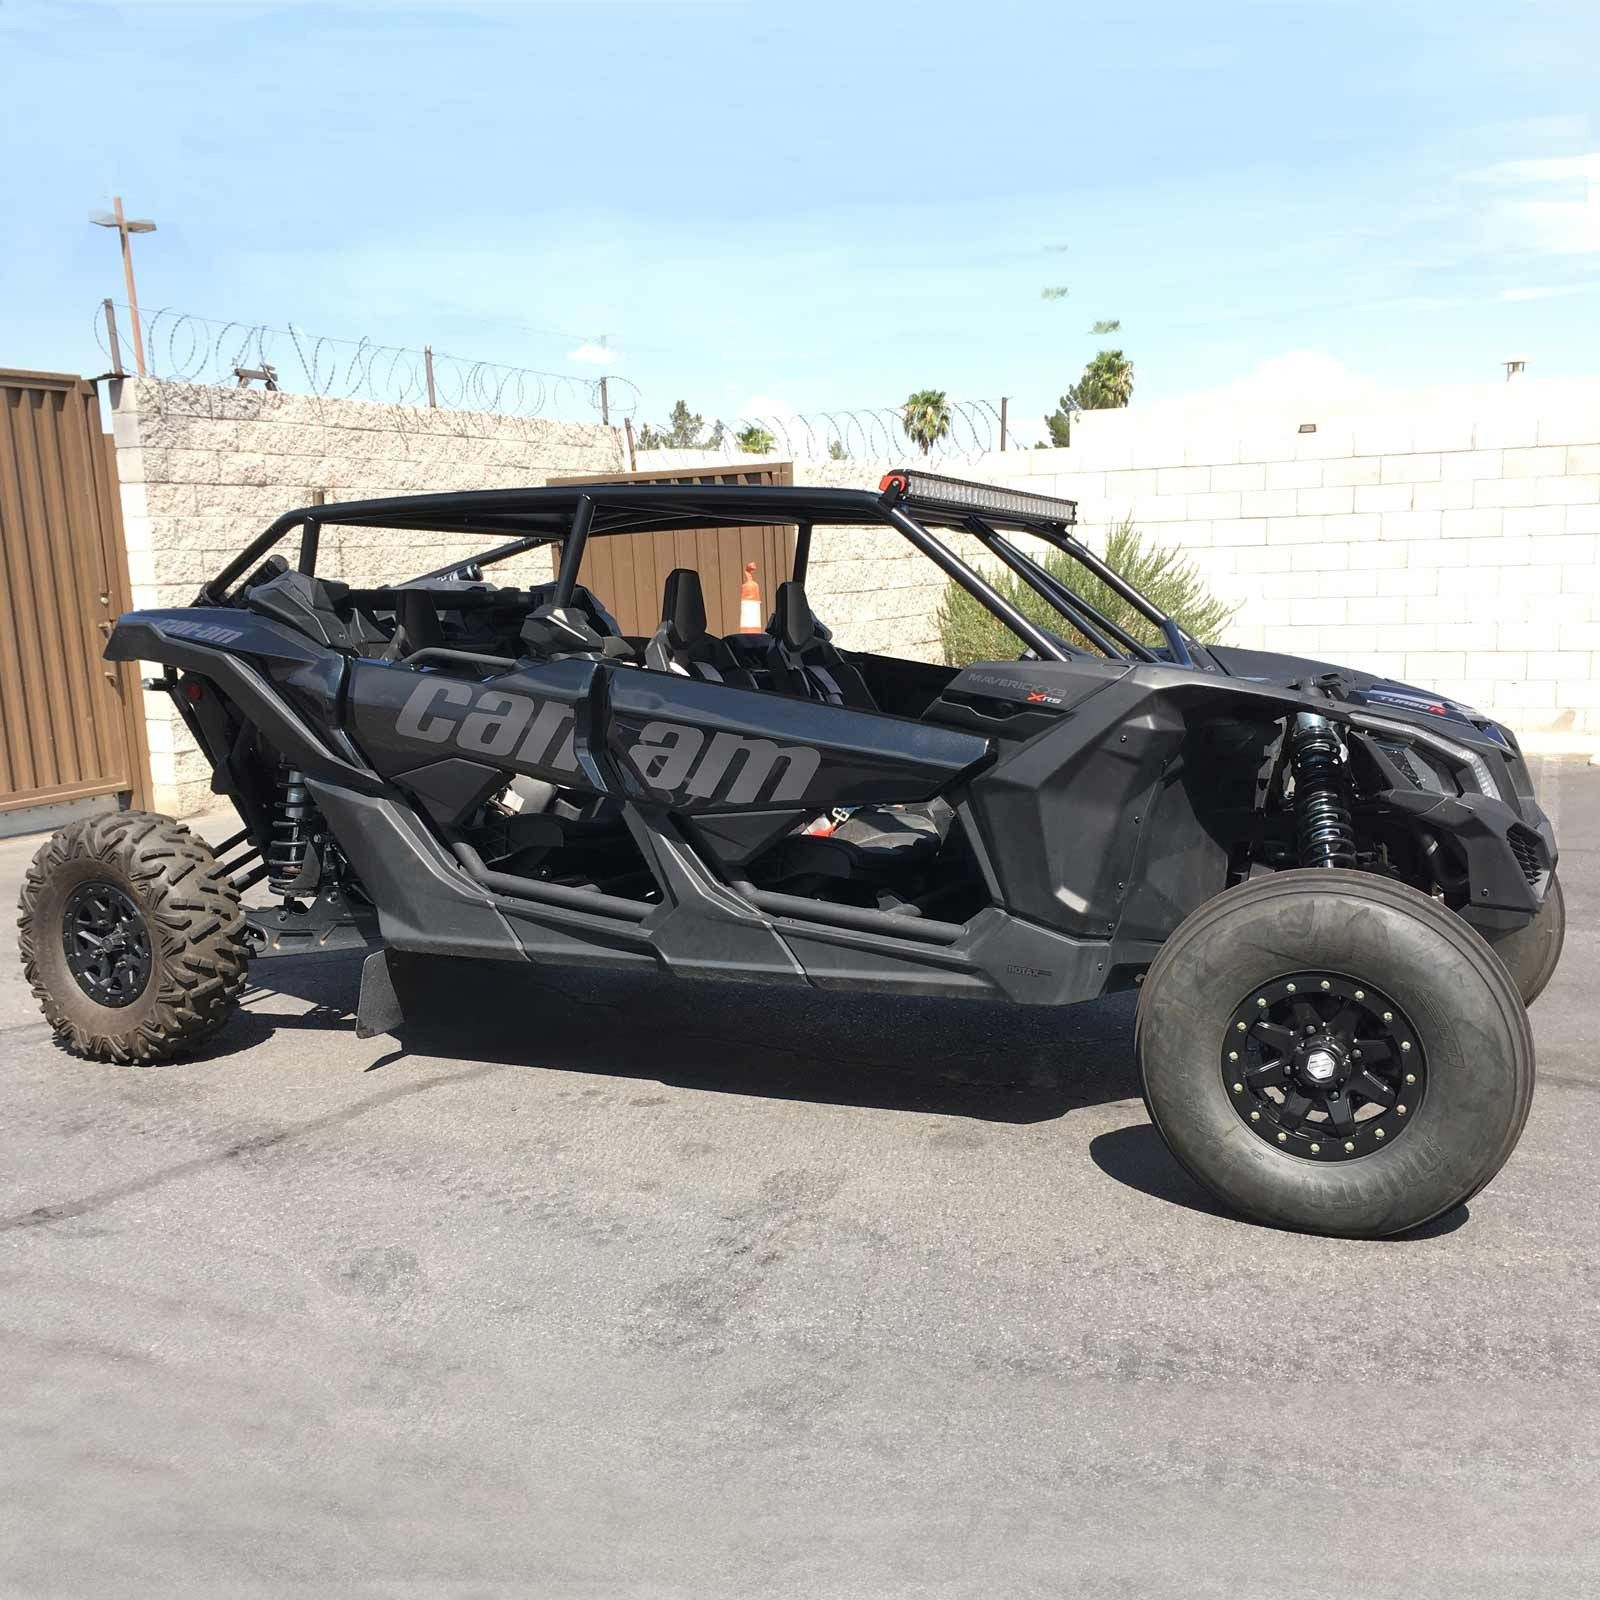 Custom Can Am X3 Max Pro Race Roll Cage 4 Seater Xrs Xds